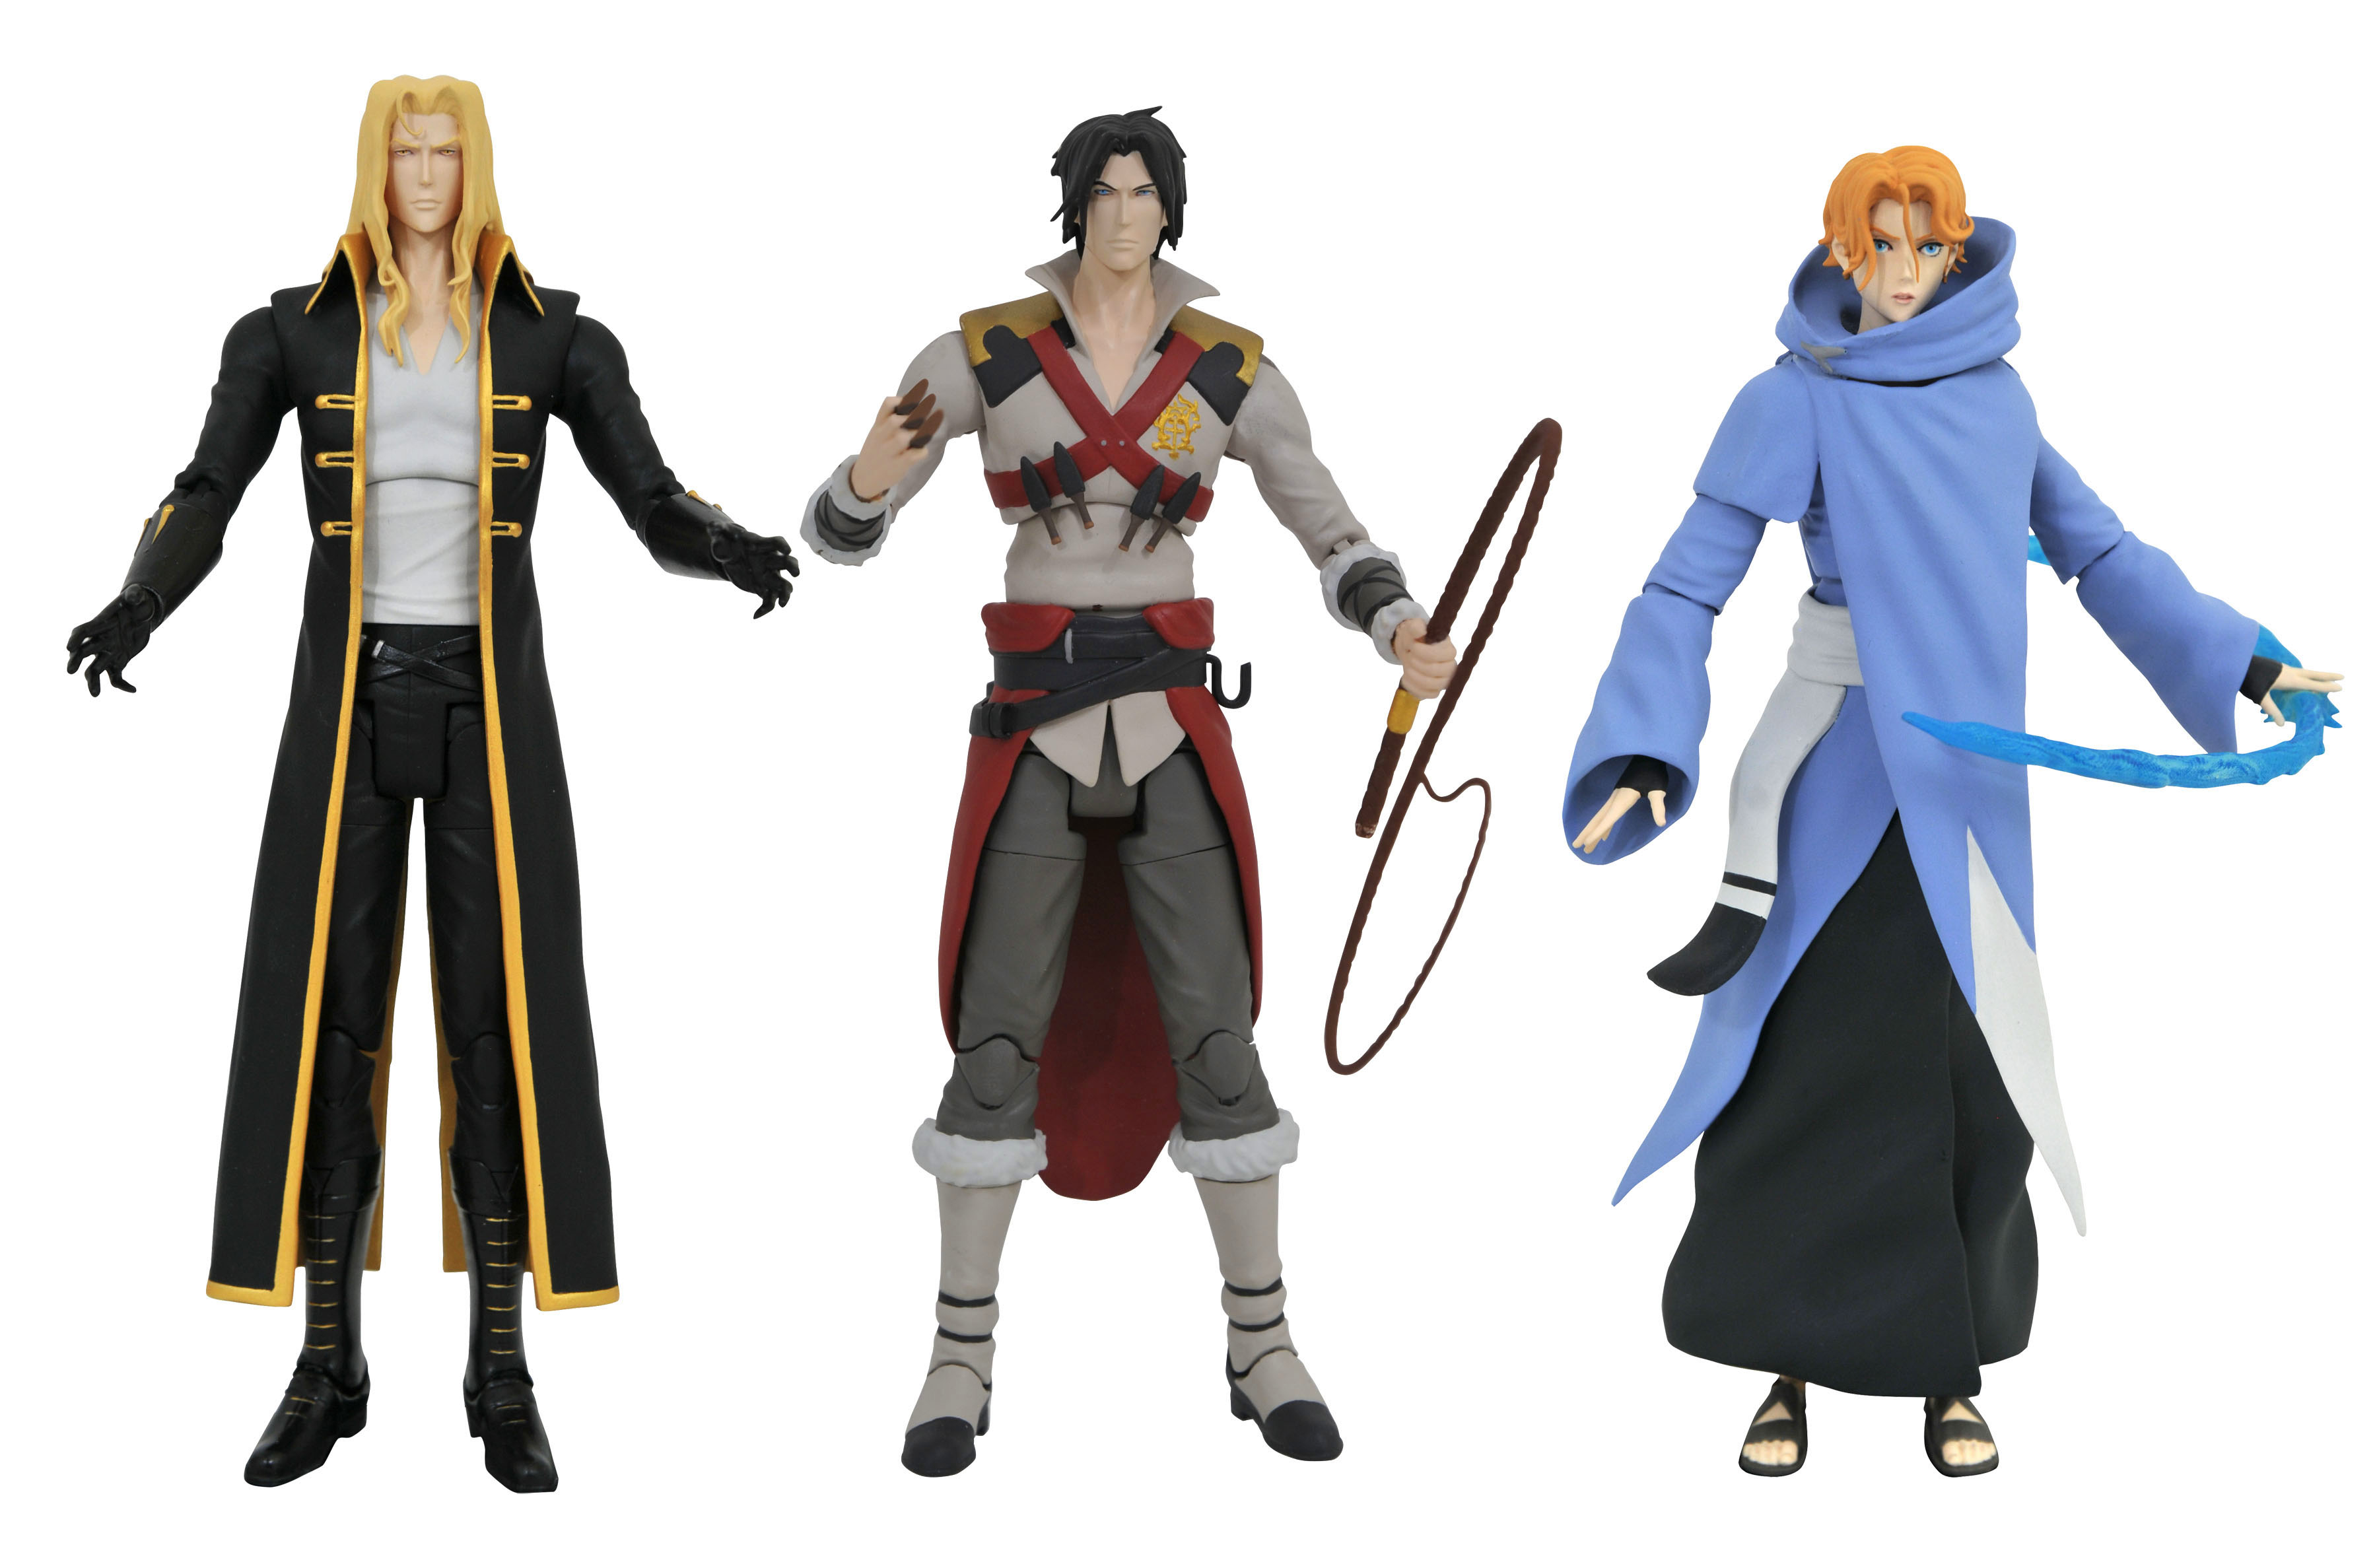 CASTLEVANIA SELECT SERIES 1 FIGURE ASST (O/A)